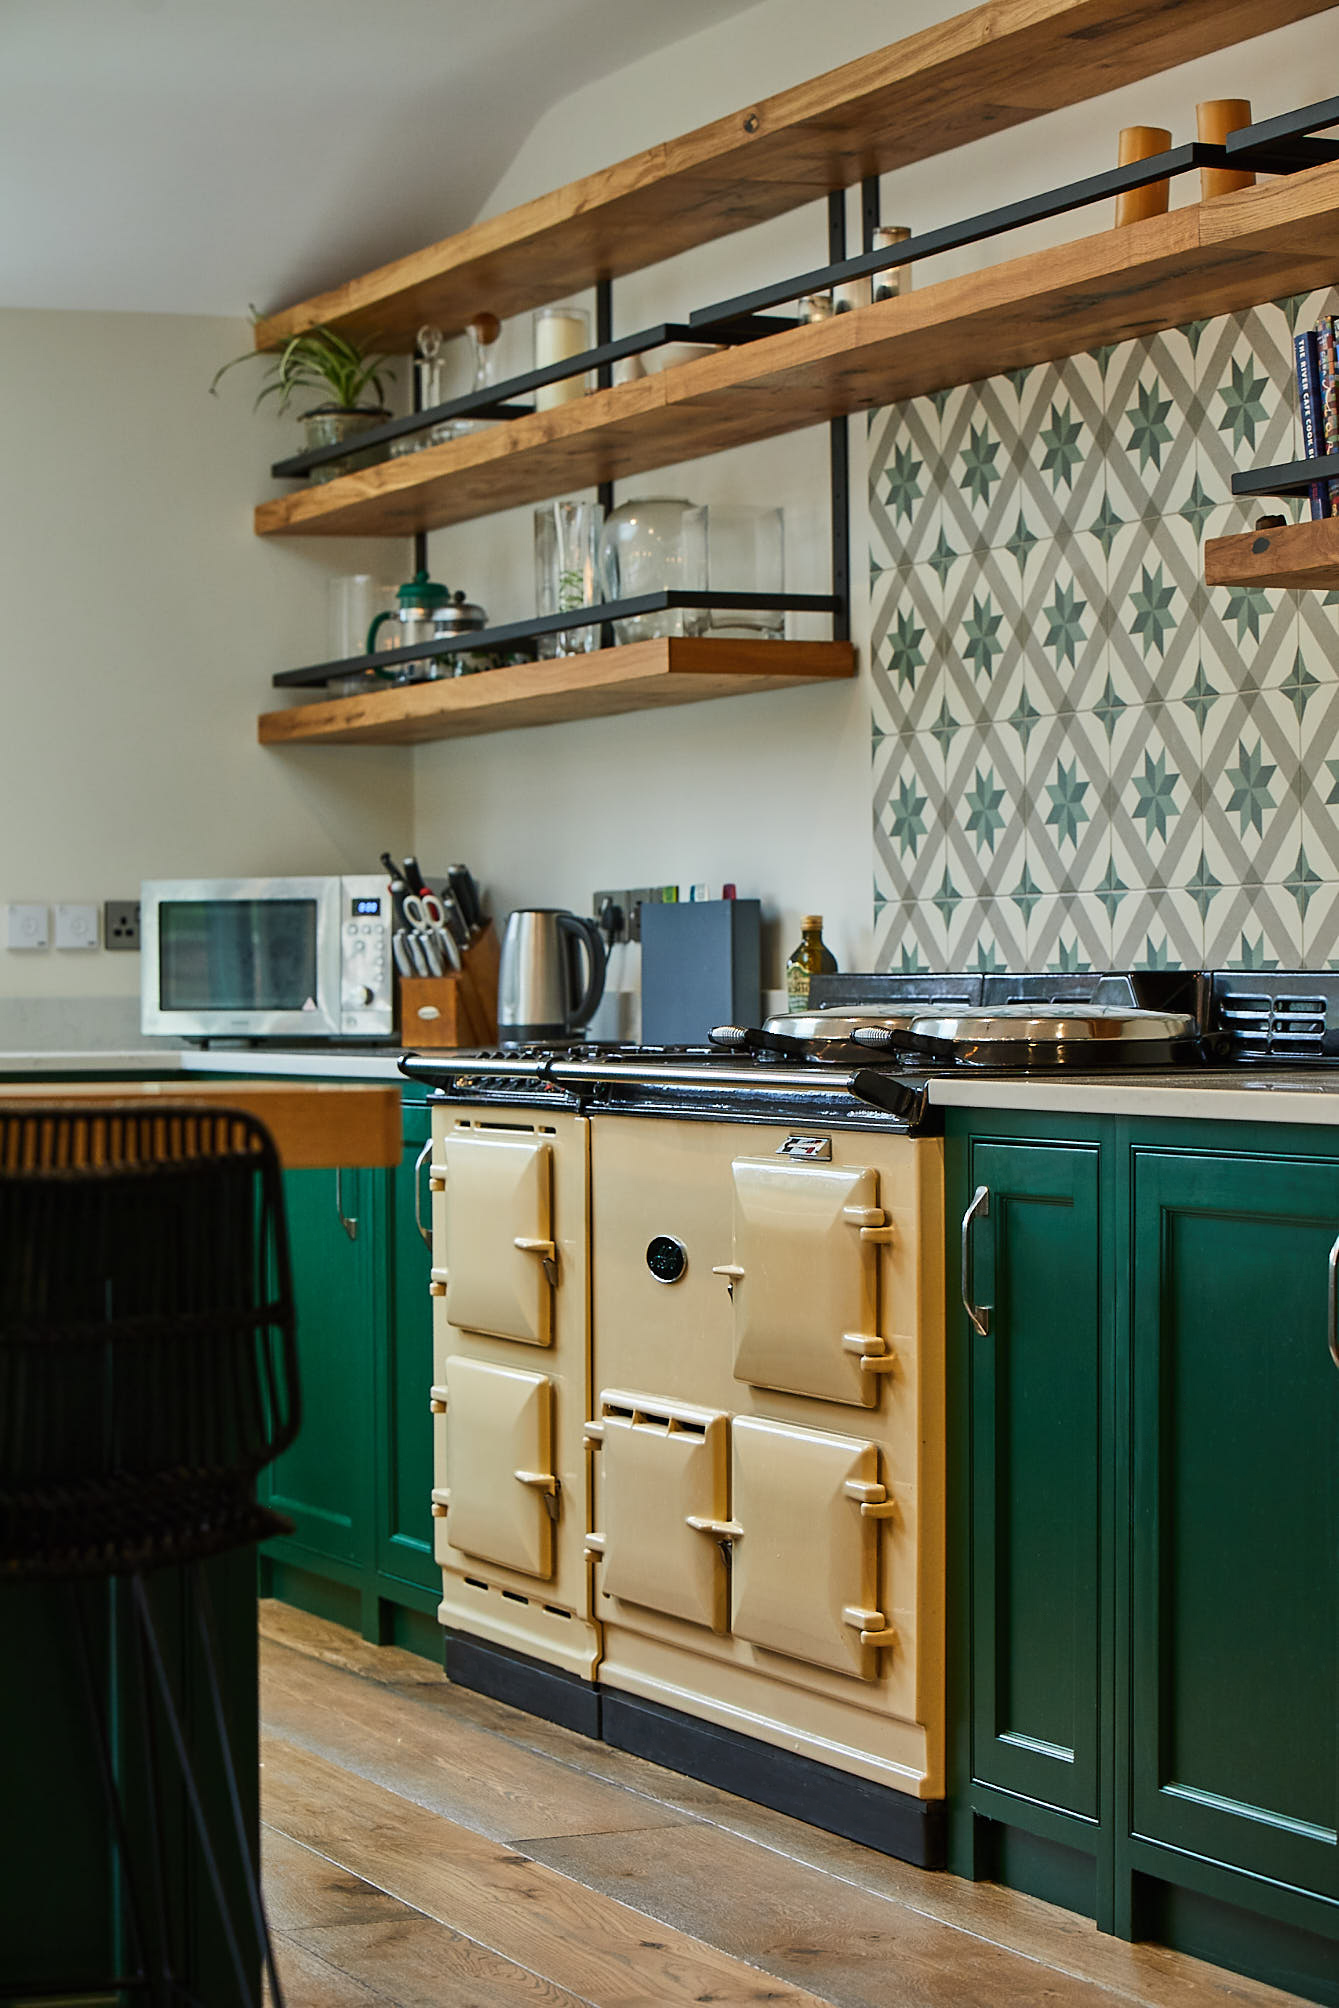 Cream AGA in bespoke kitchen with green shaker cabinets painted in Little Greene paint